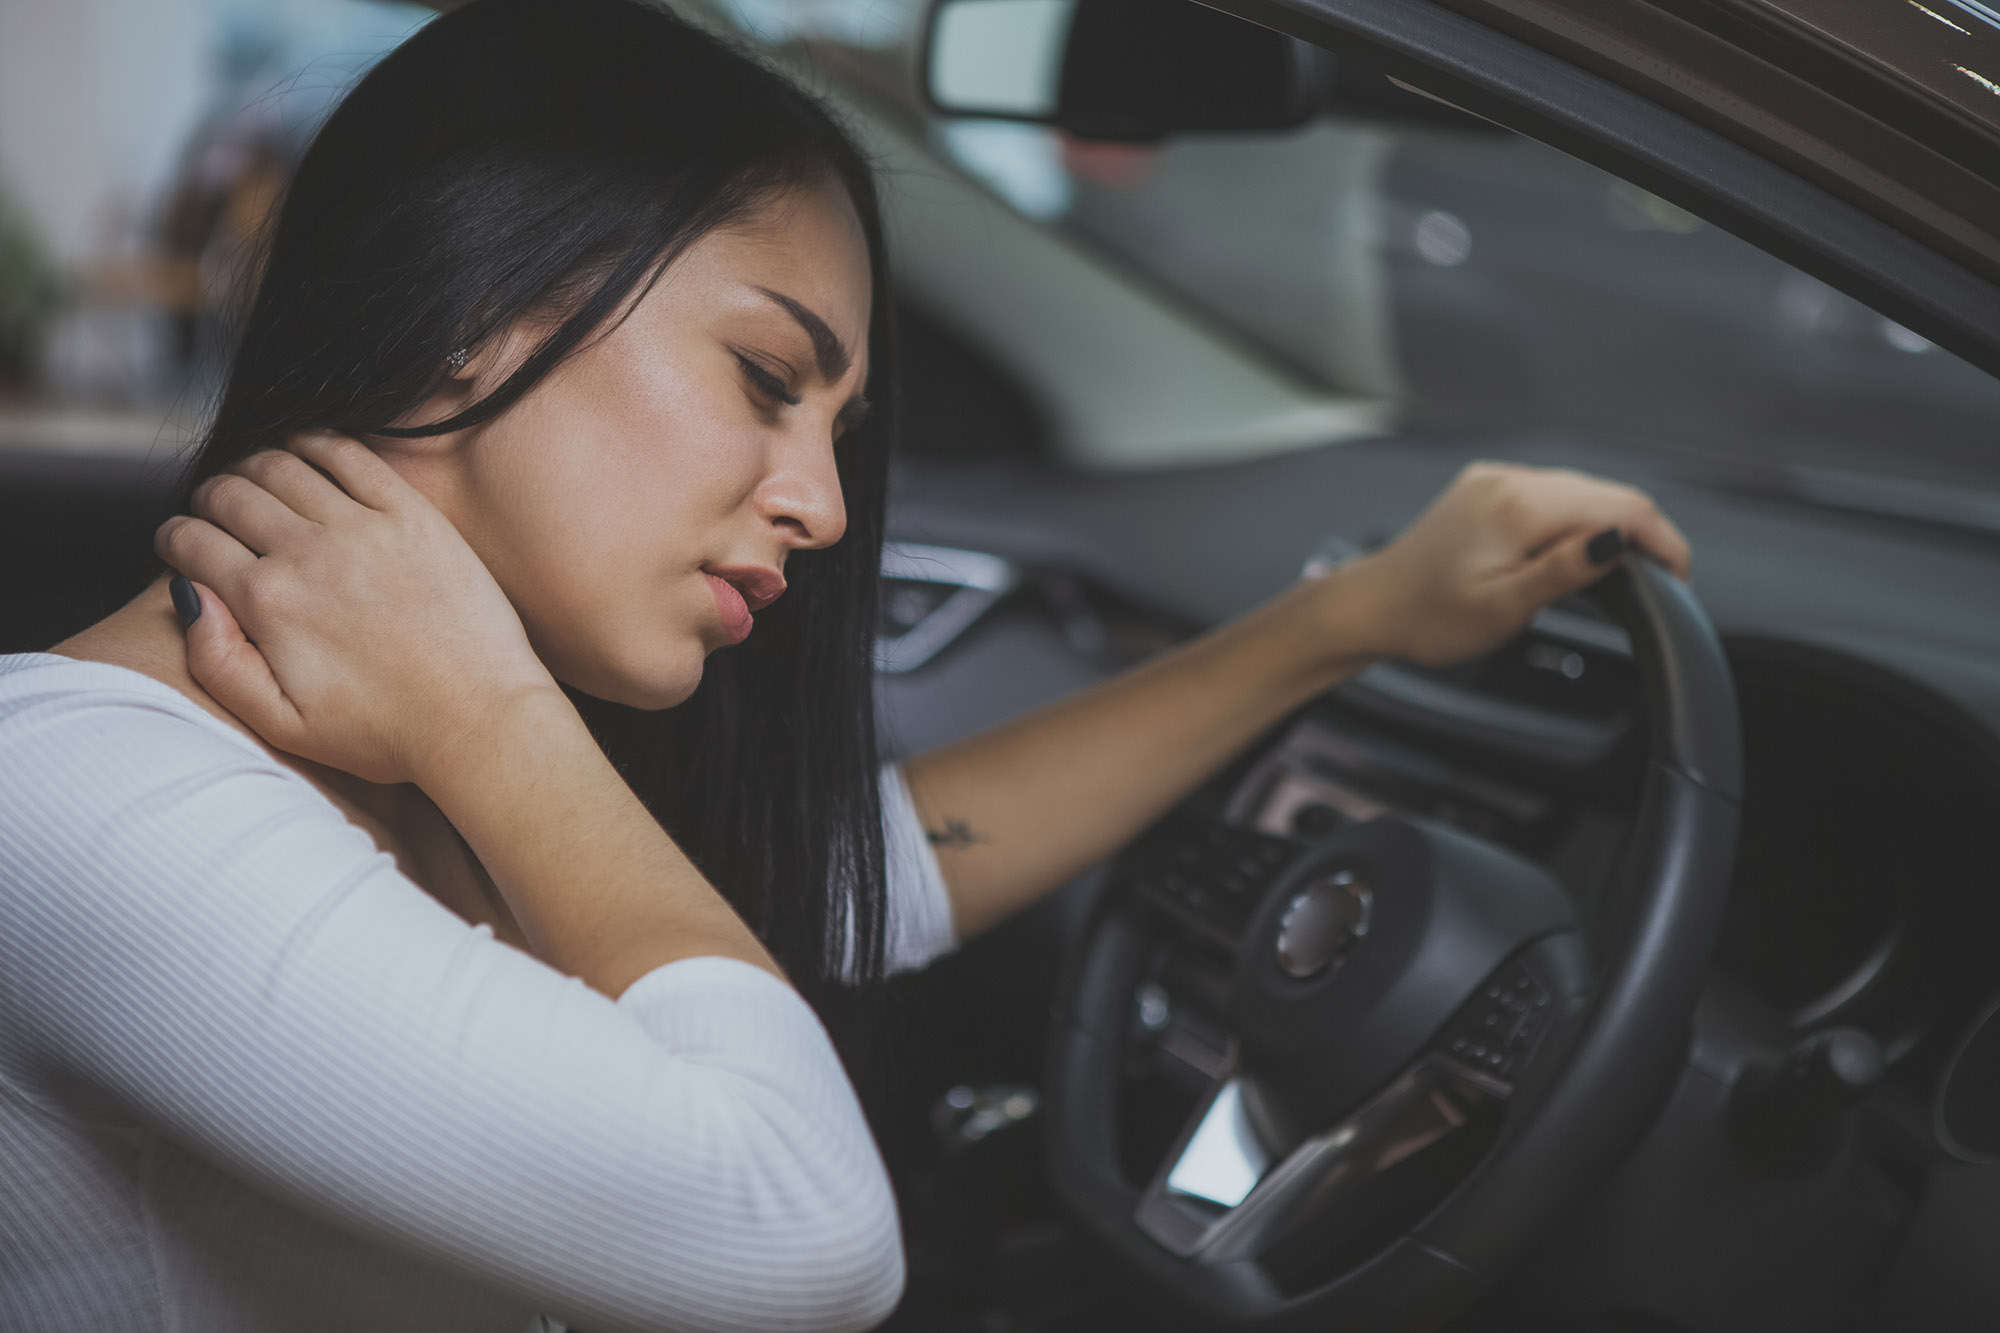 neck injury whiplash from car accident compensation claims